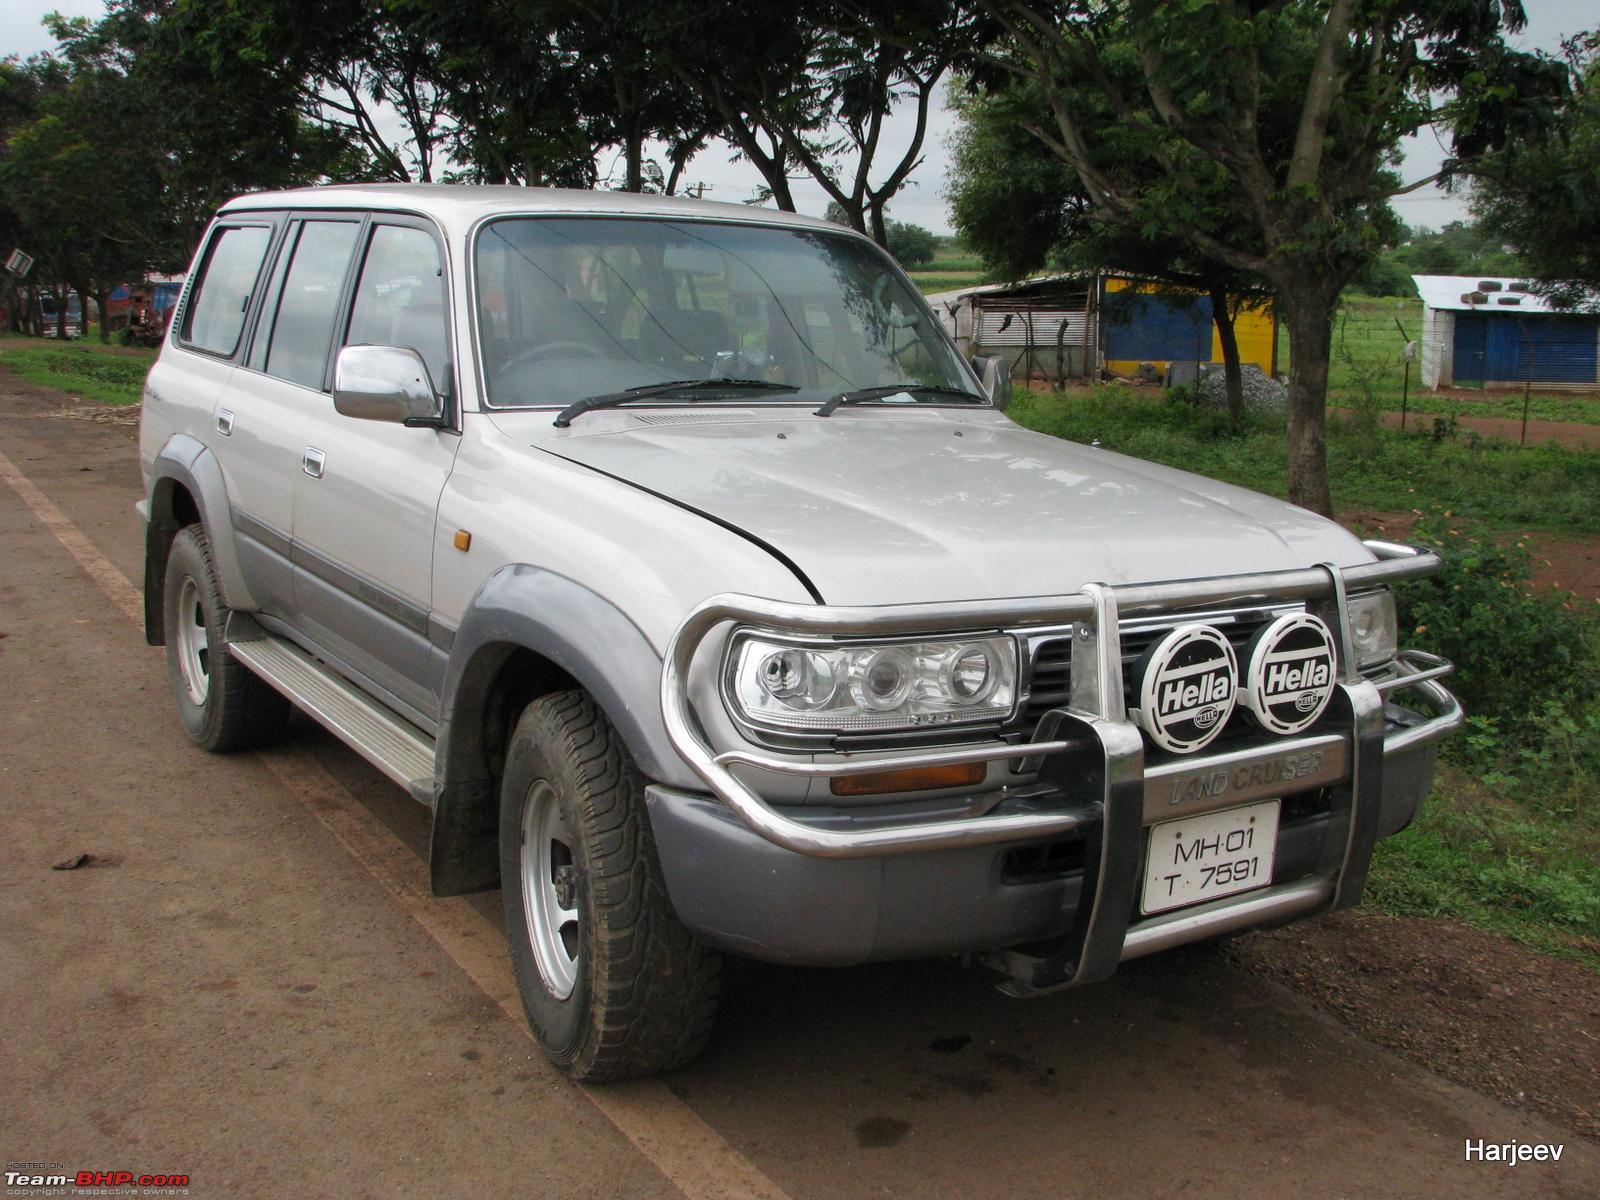 Toyota Landcruiser - 80 Series HDJ80 - Owned for 82,000 kms and